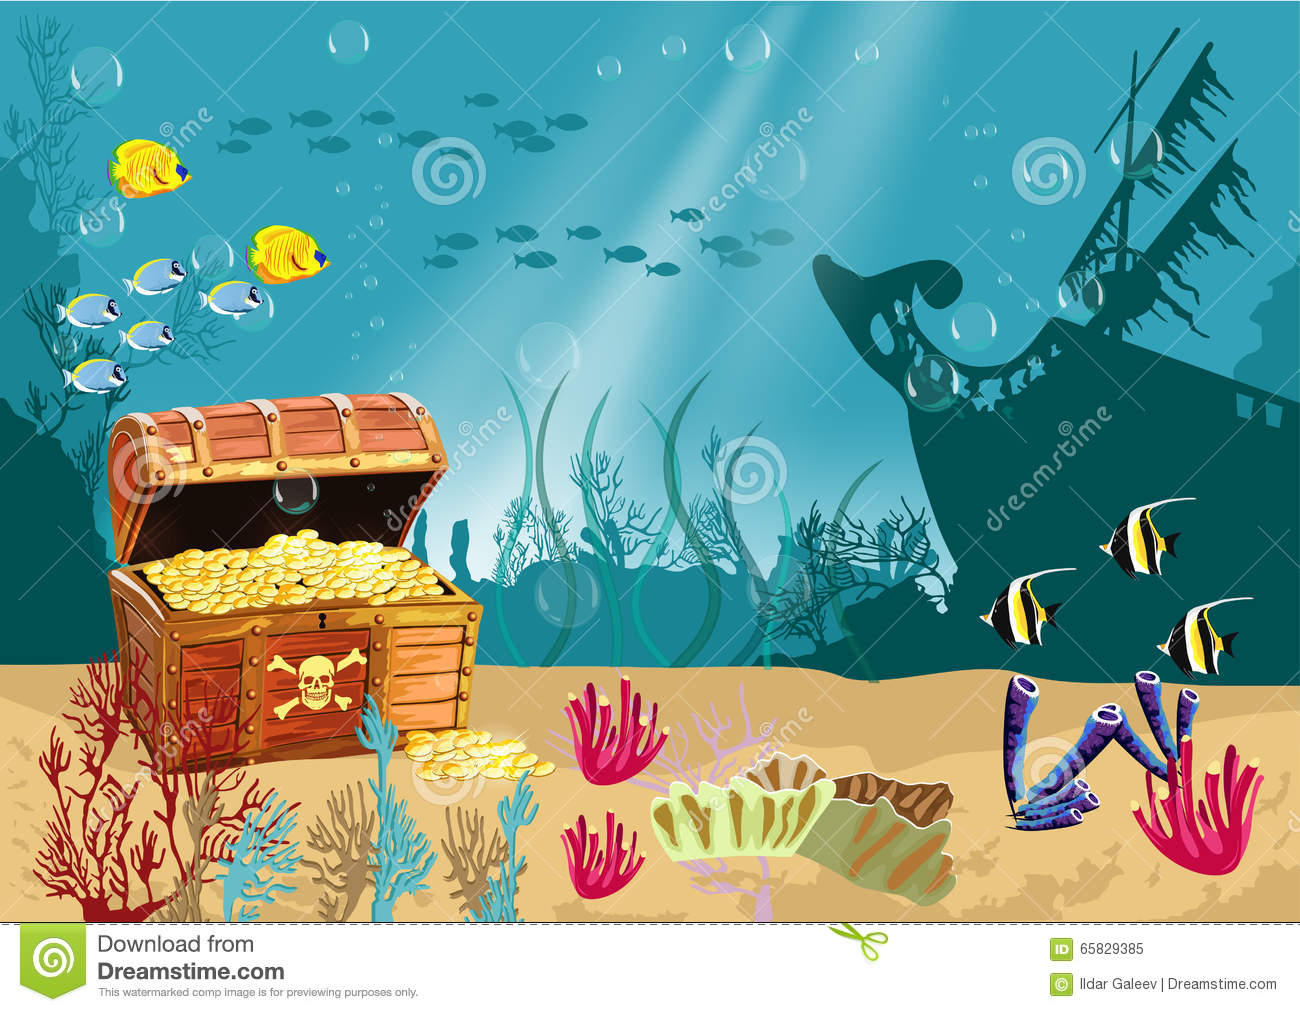 Underwater Scenery With An Open Pirate Treasure Chest Stock Vector ...